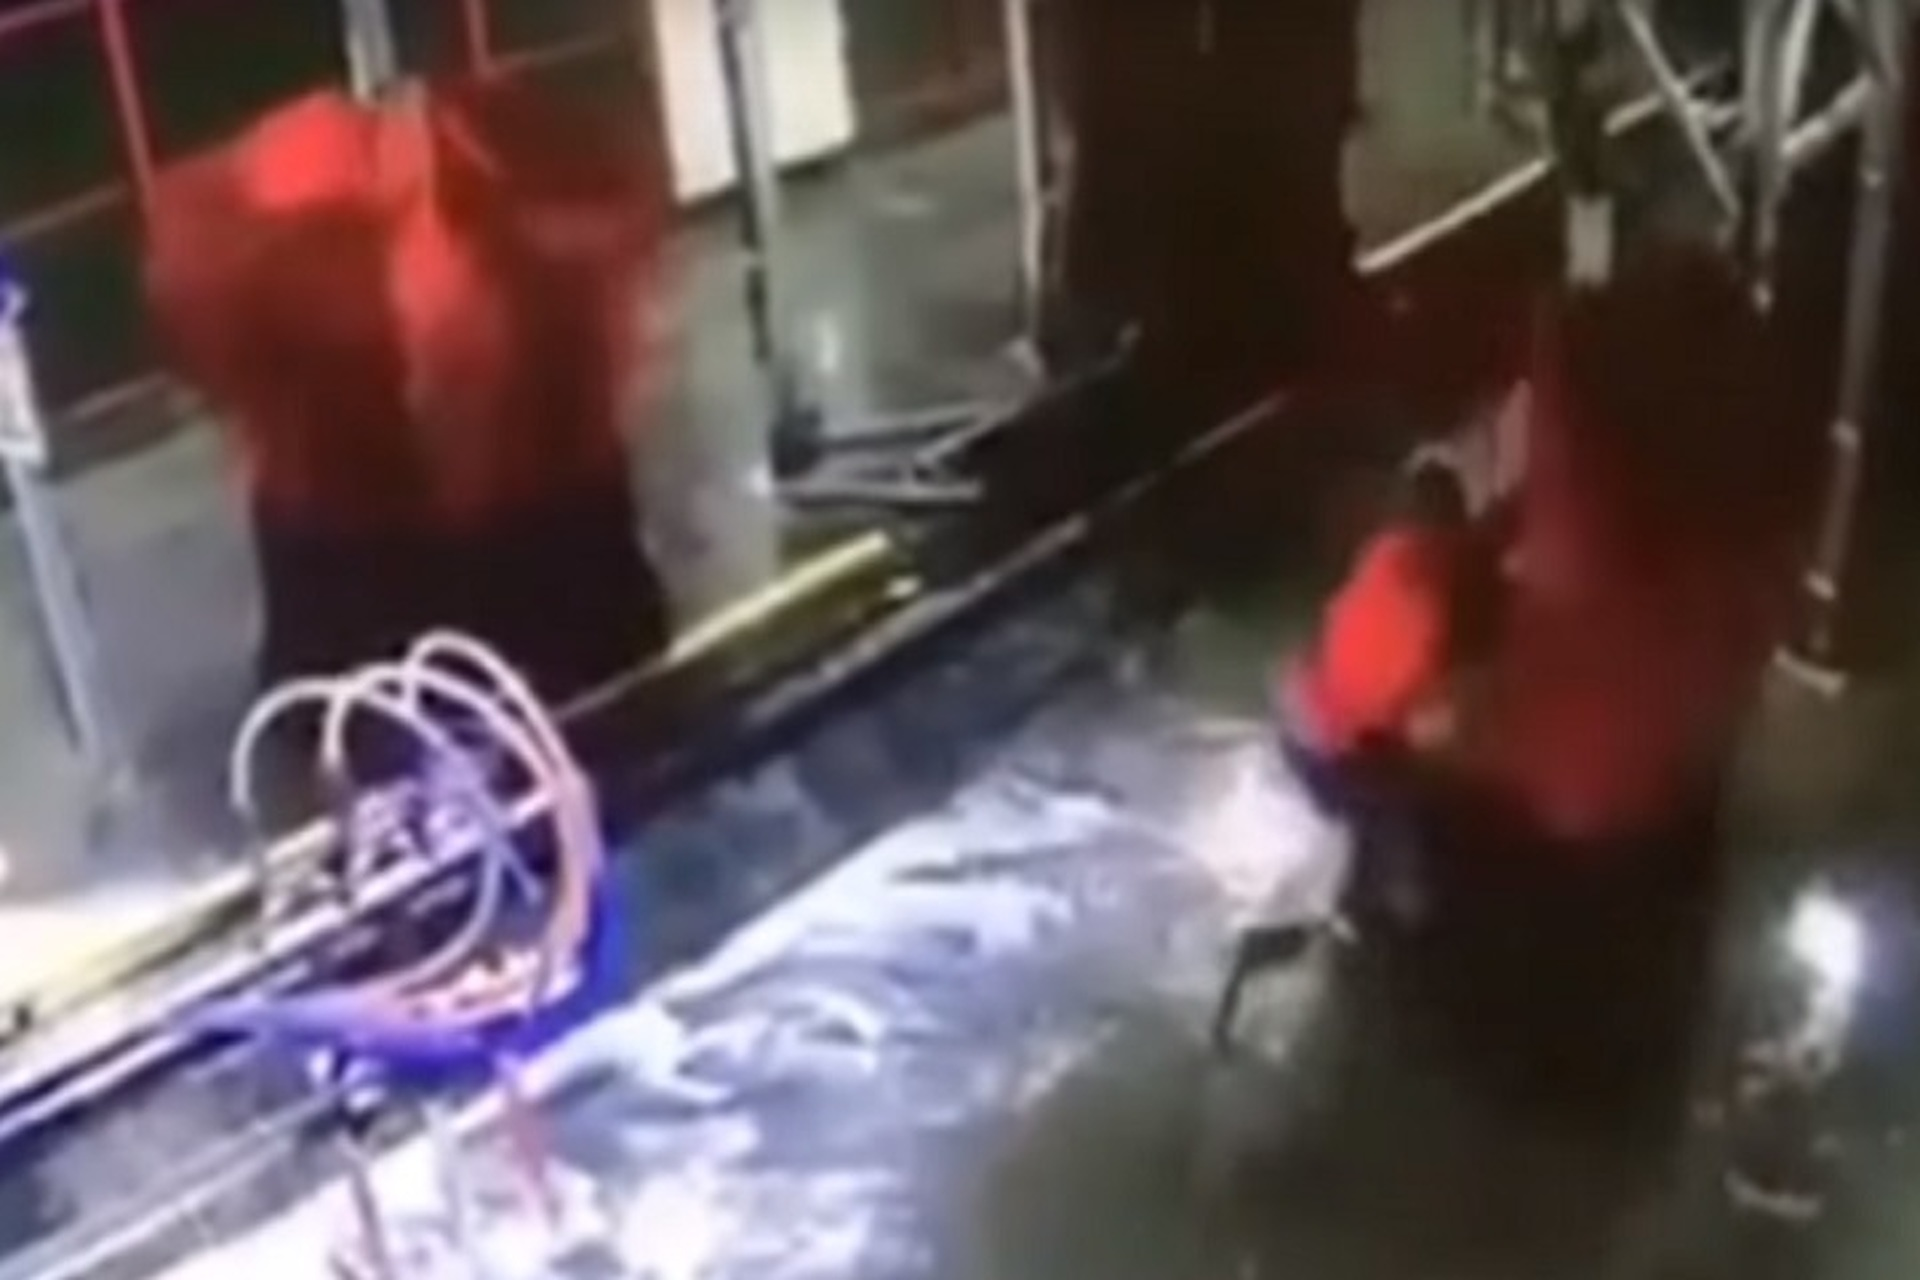 Watch a Car Wash Worker Attacked by a Giant Spinning Brush